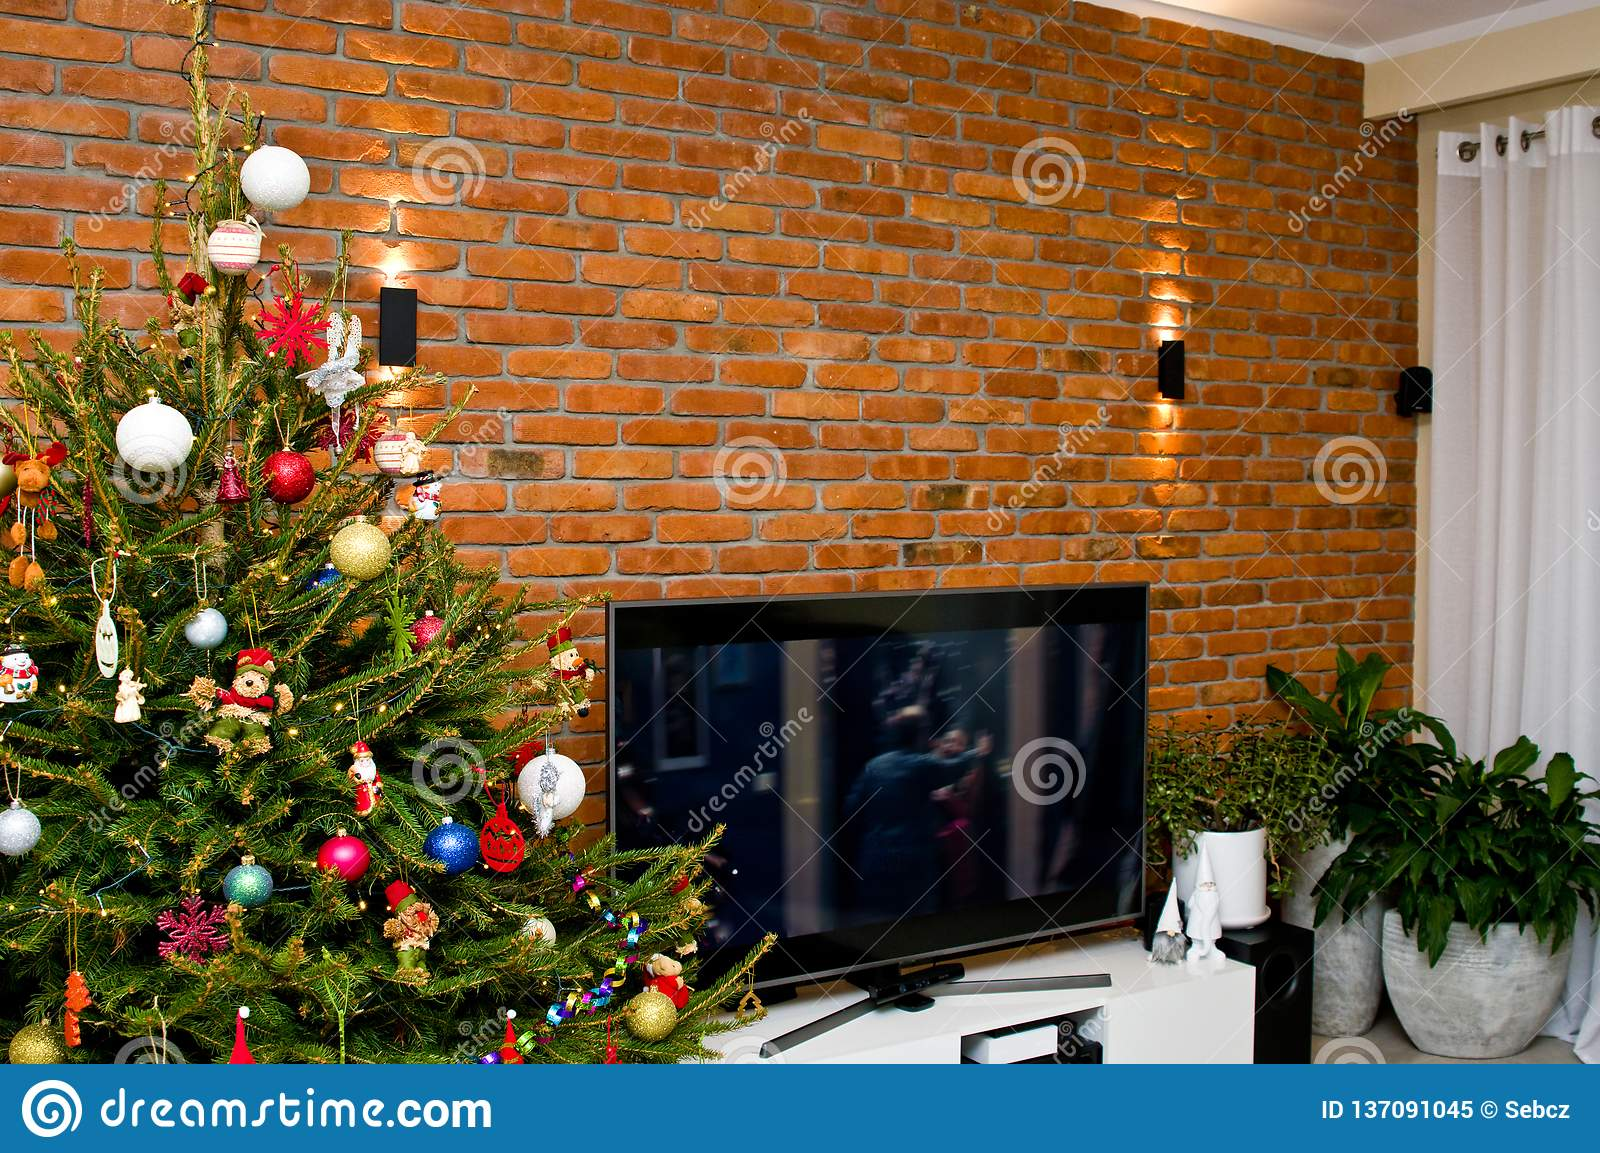 Home Decorations For Christmas, Television Wall Stock Image